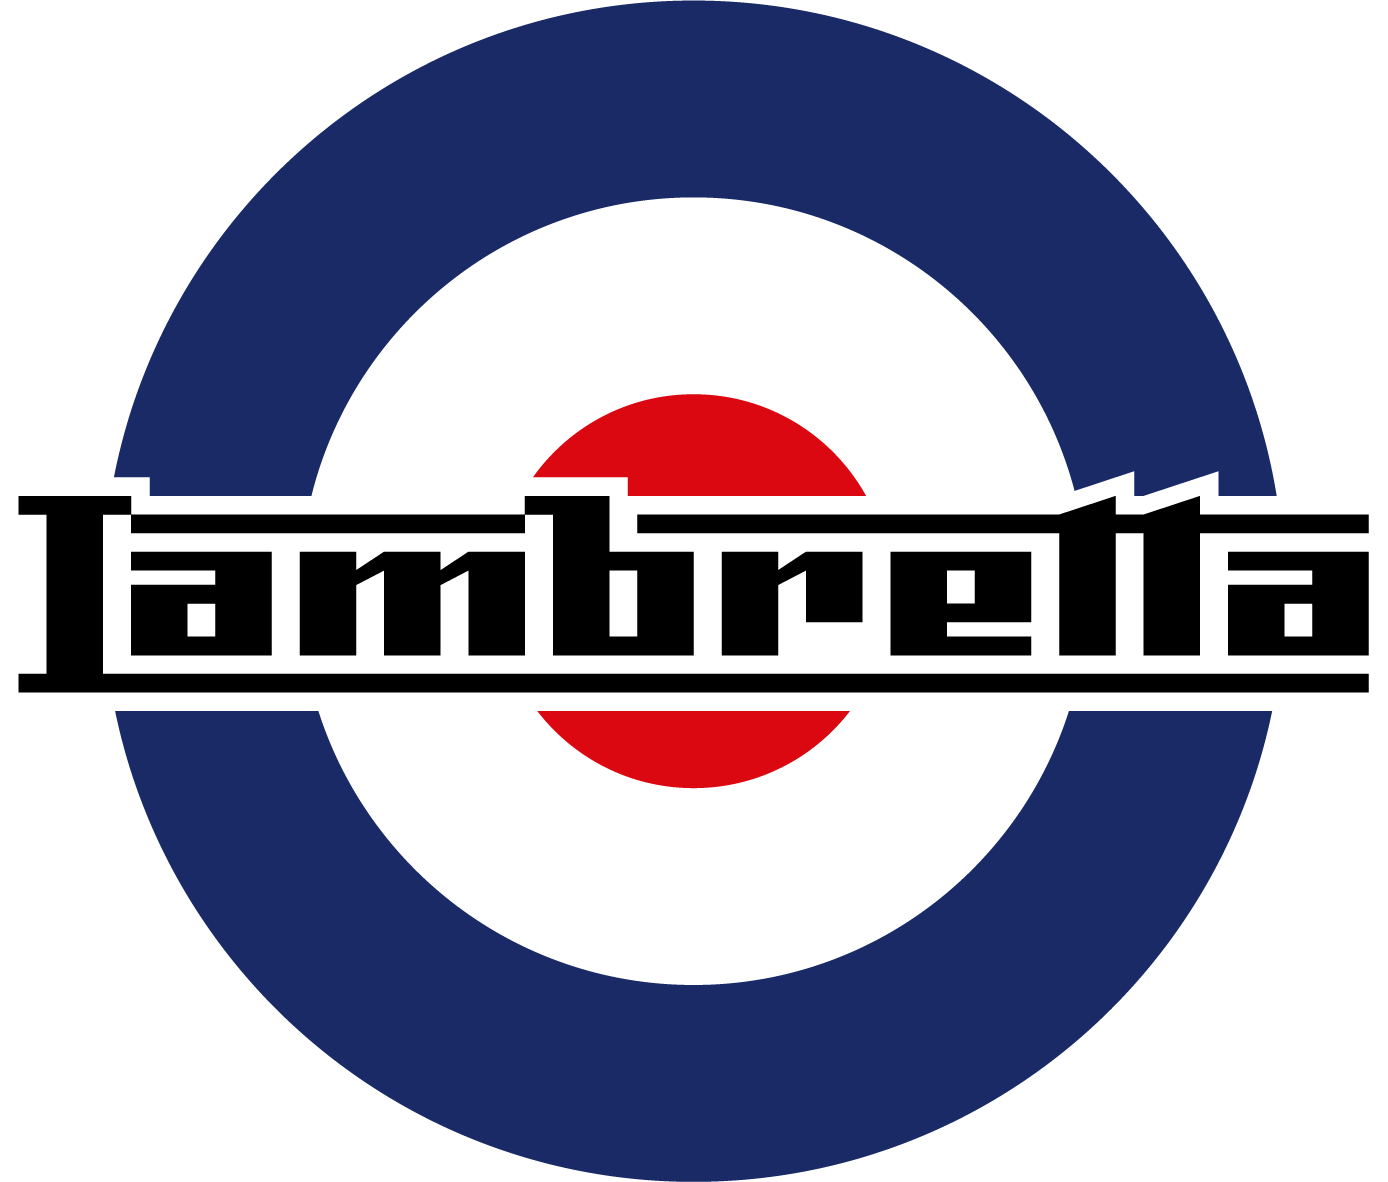 Lambretta logo blue red white